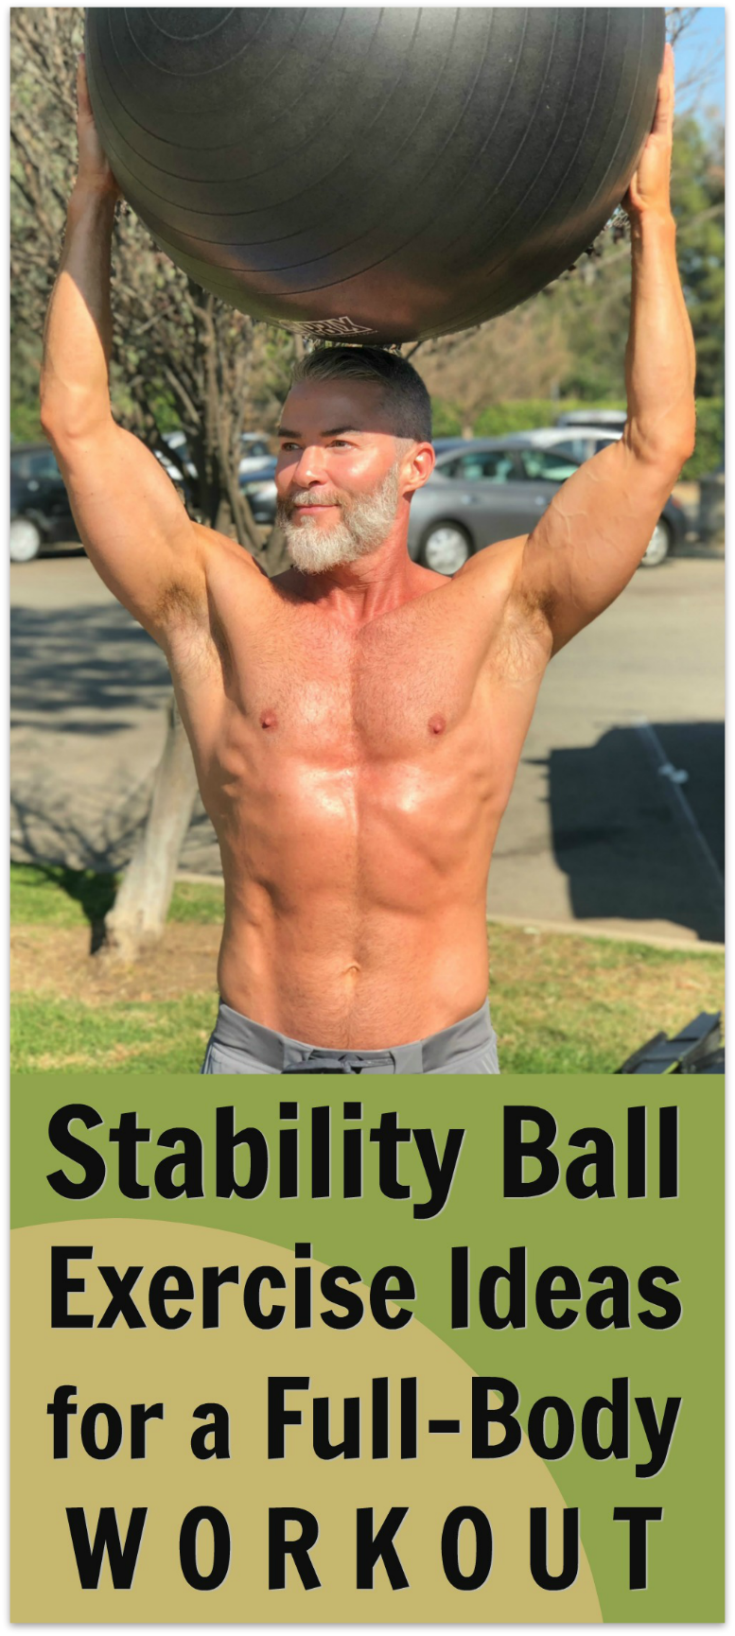 A stability ball is a beneficial workout tool for full-body fitness training, particularly for strengthening core muscles. Try these 14 exercises. See video, too! #overfiftyandfit #stability #ball #swissball #bodyball #core #muscles #strength #balance #fitness #workout #over50 #exercise #ideas #health #training #fullbody #wellness